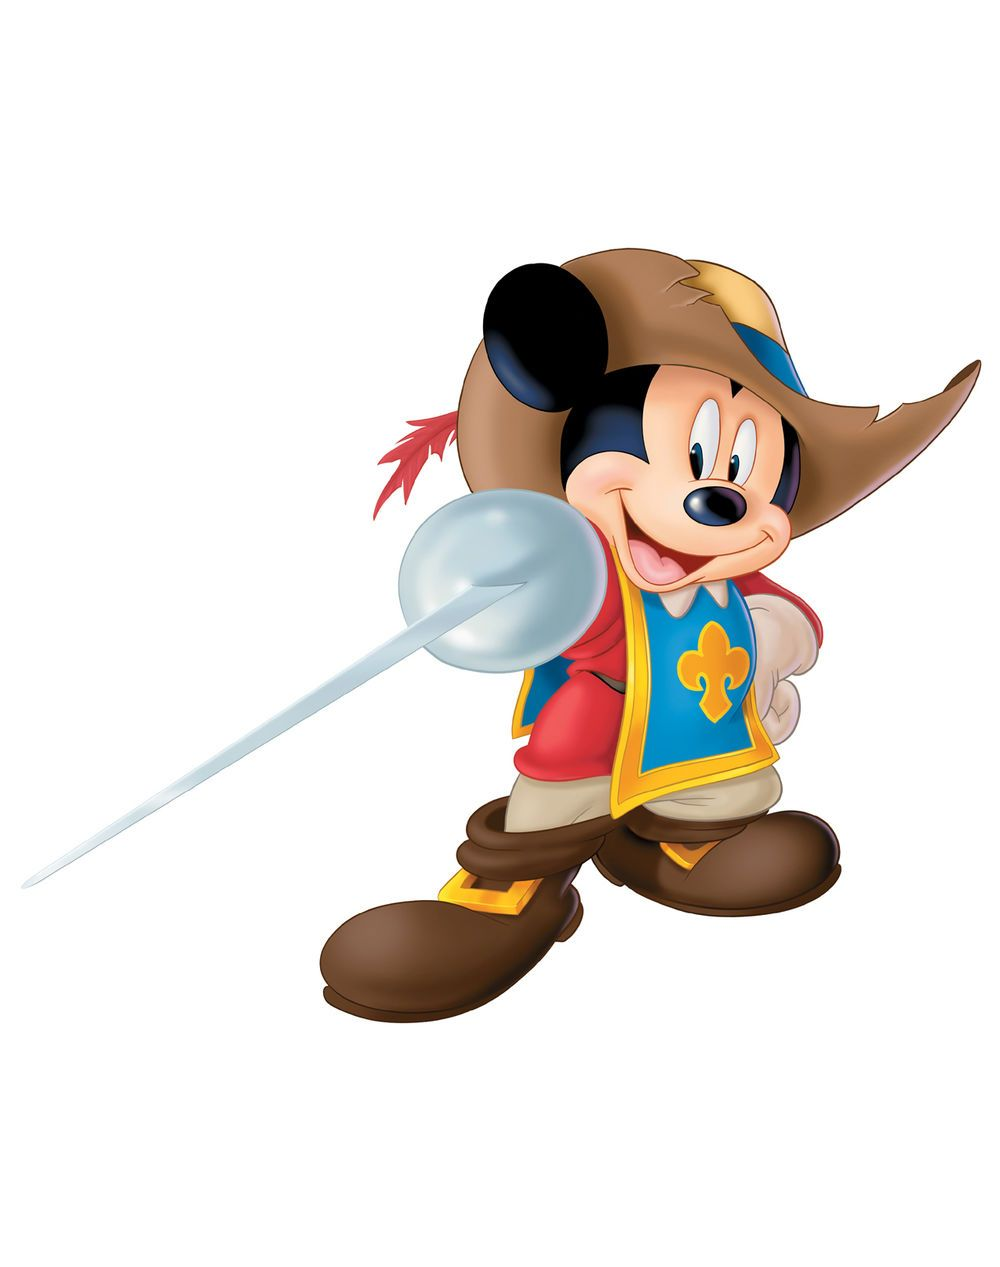 Mickey Mouse/Gallery | Animation List -Animals and Mythical